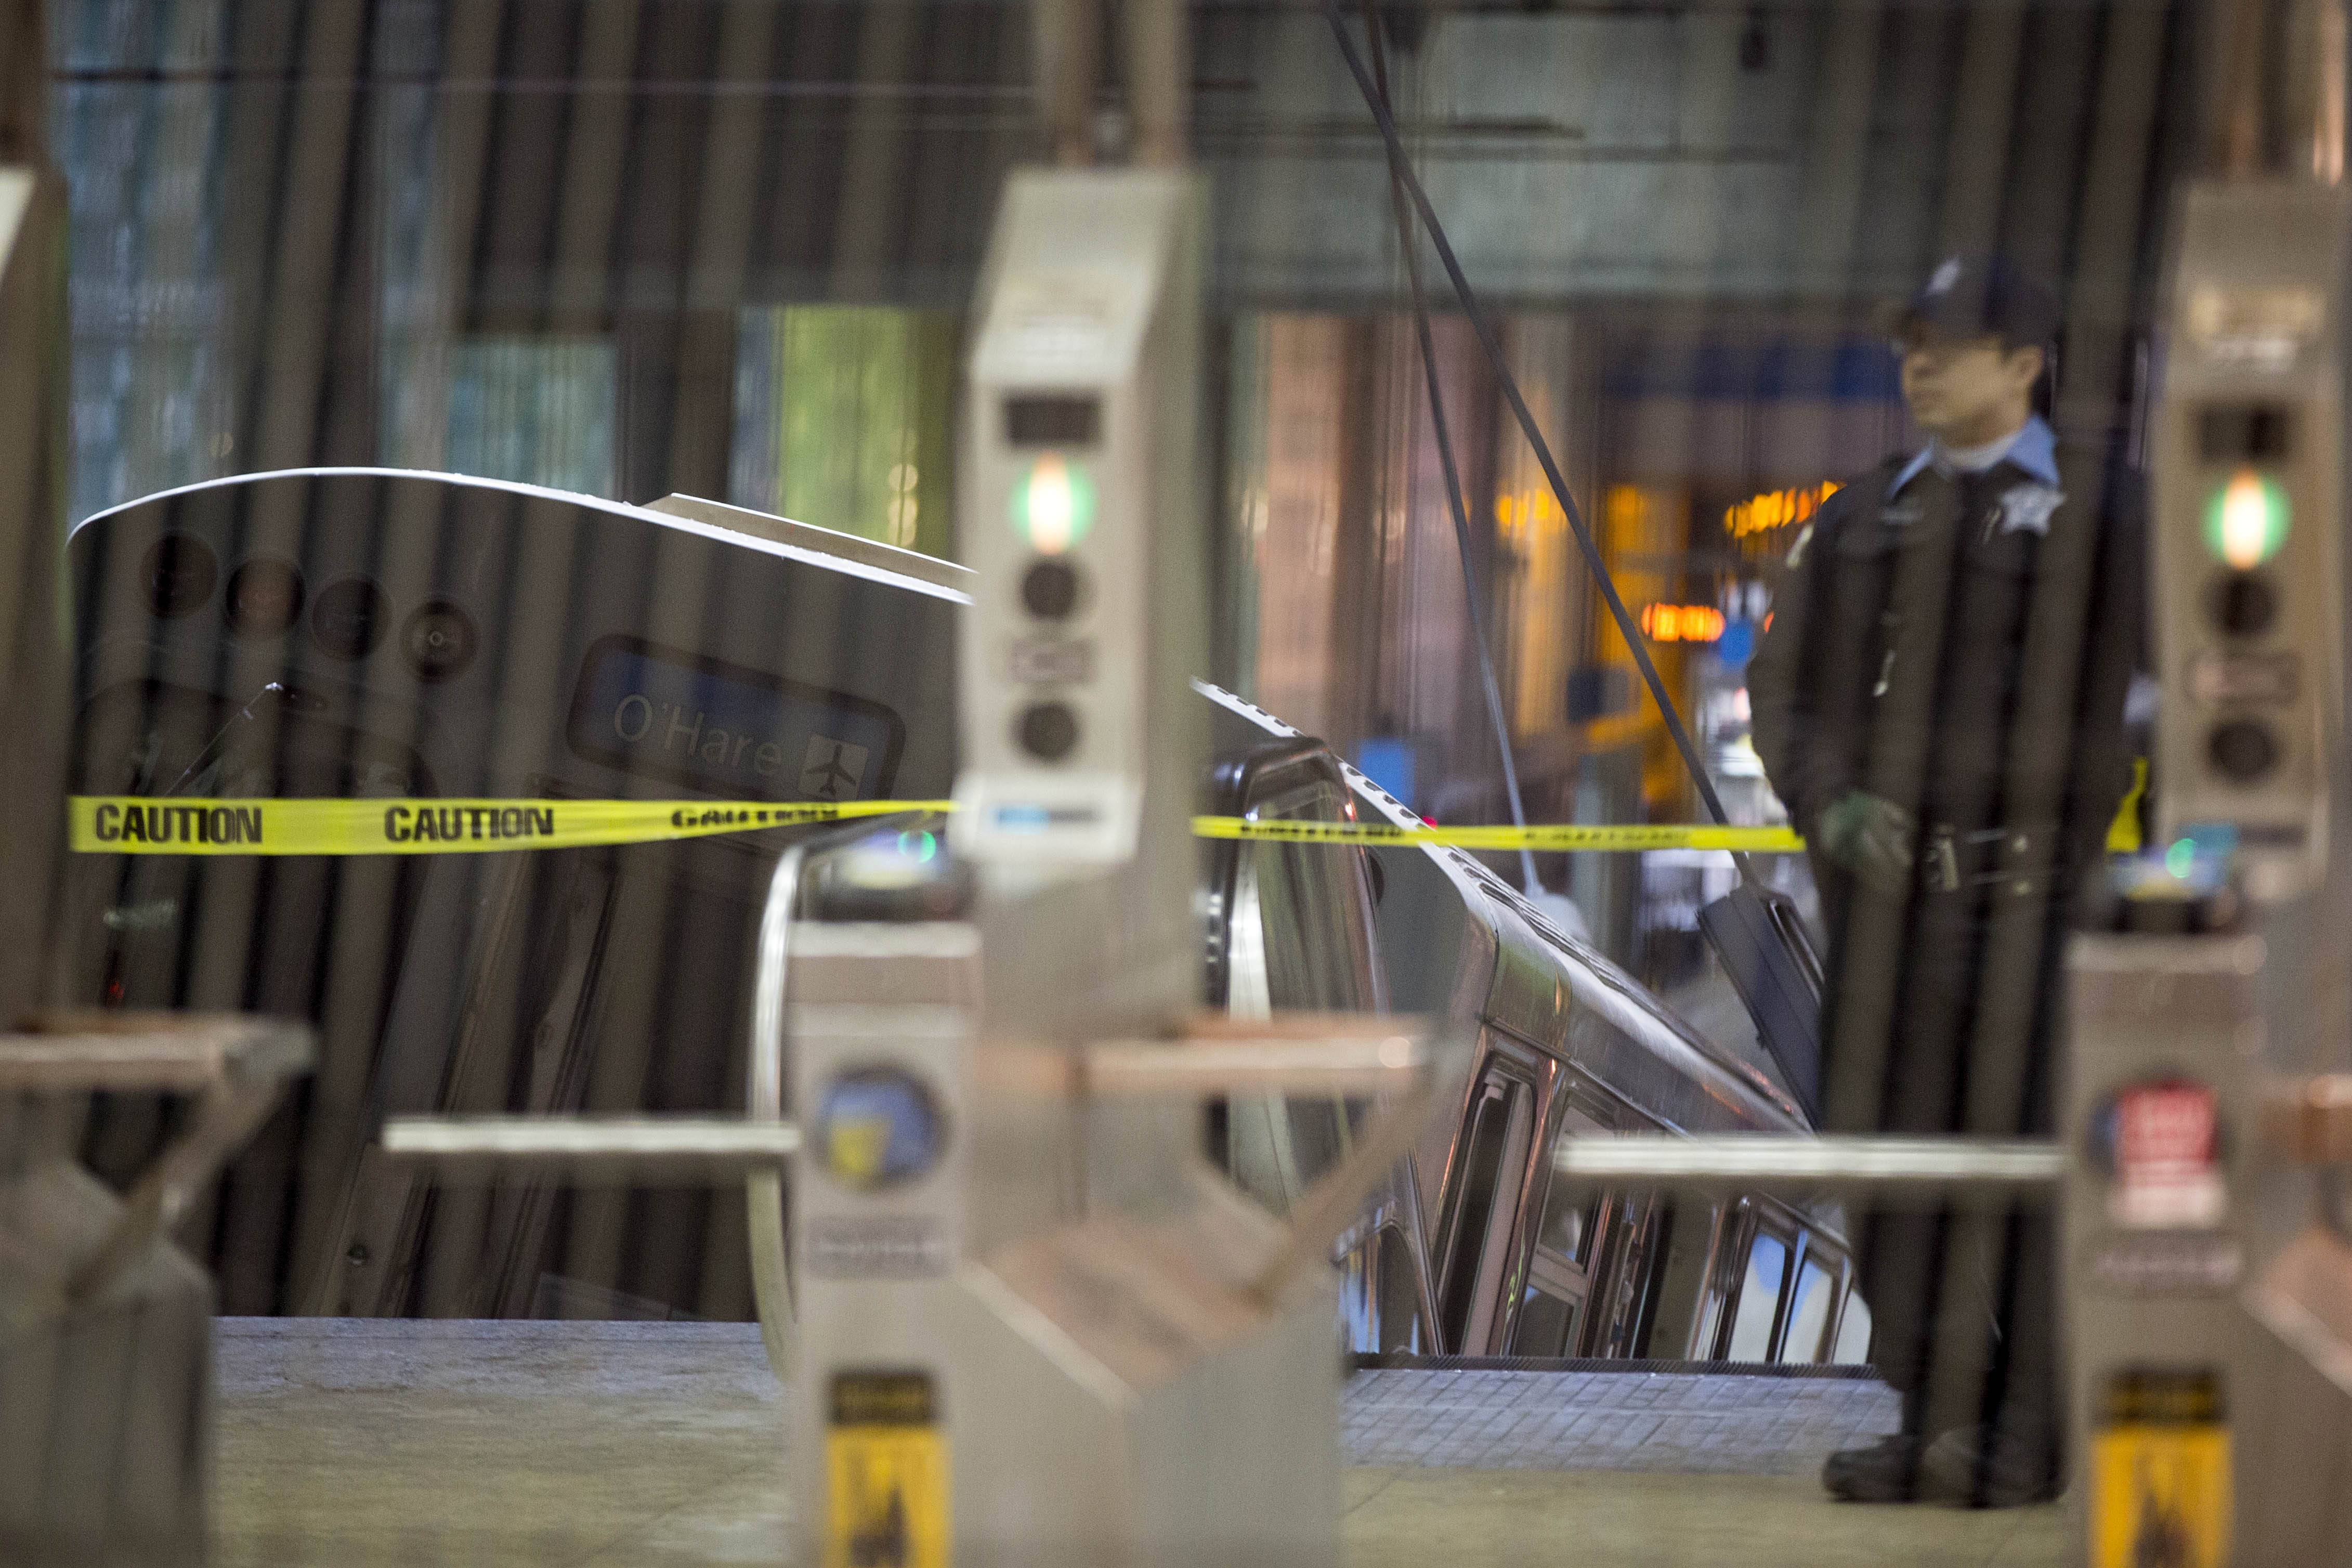 A police officer stands Monday near a Chicago Transit Authority train car that derailed at the O'Hare Airport station. More than 30 people were injured after the eight-car train plowed across a platform and scaled an escalator at the underground station.